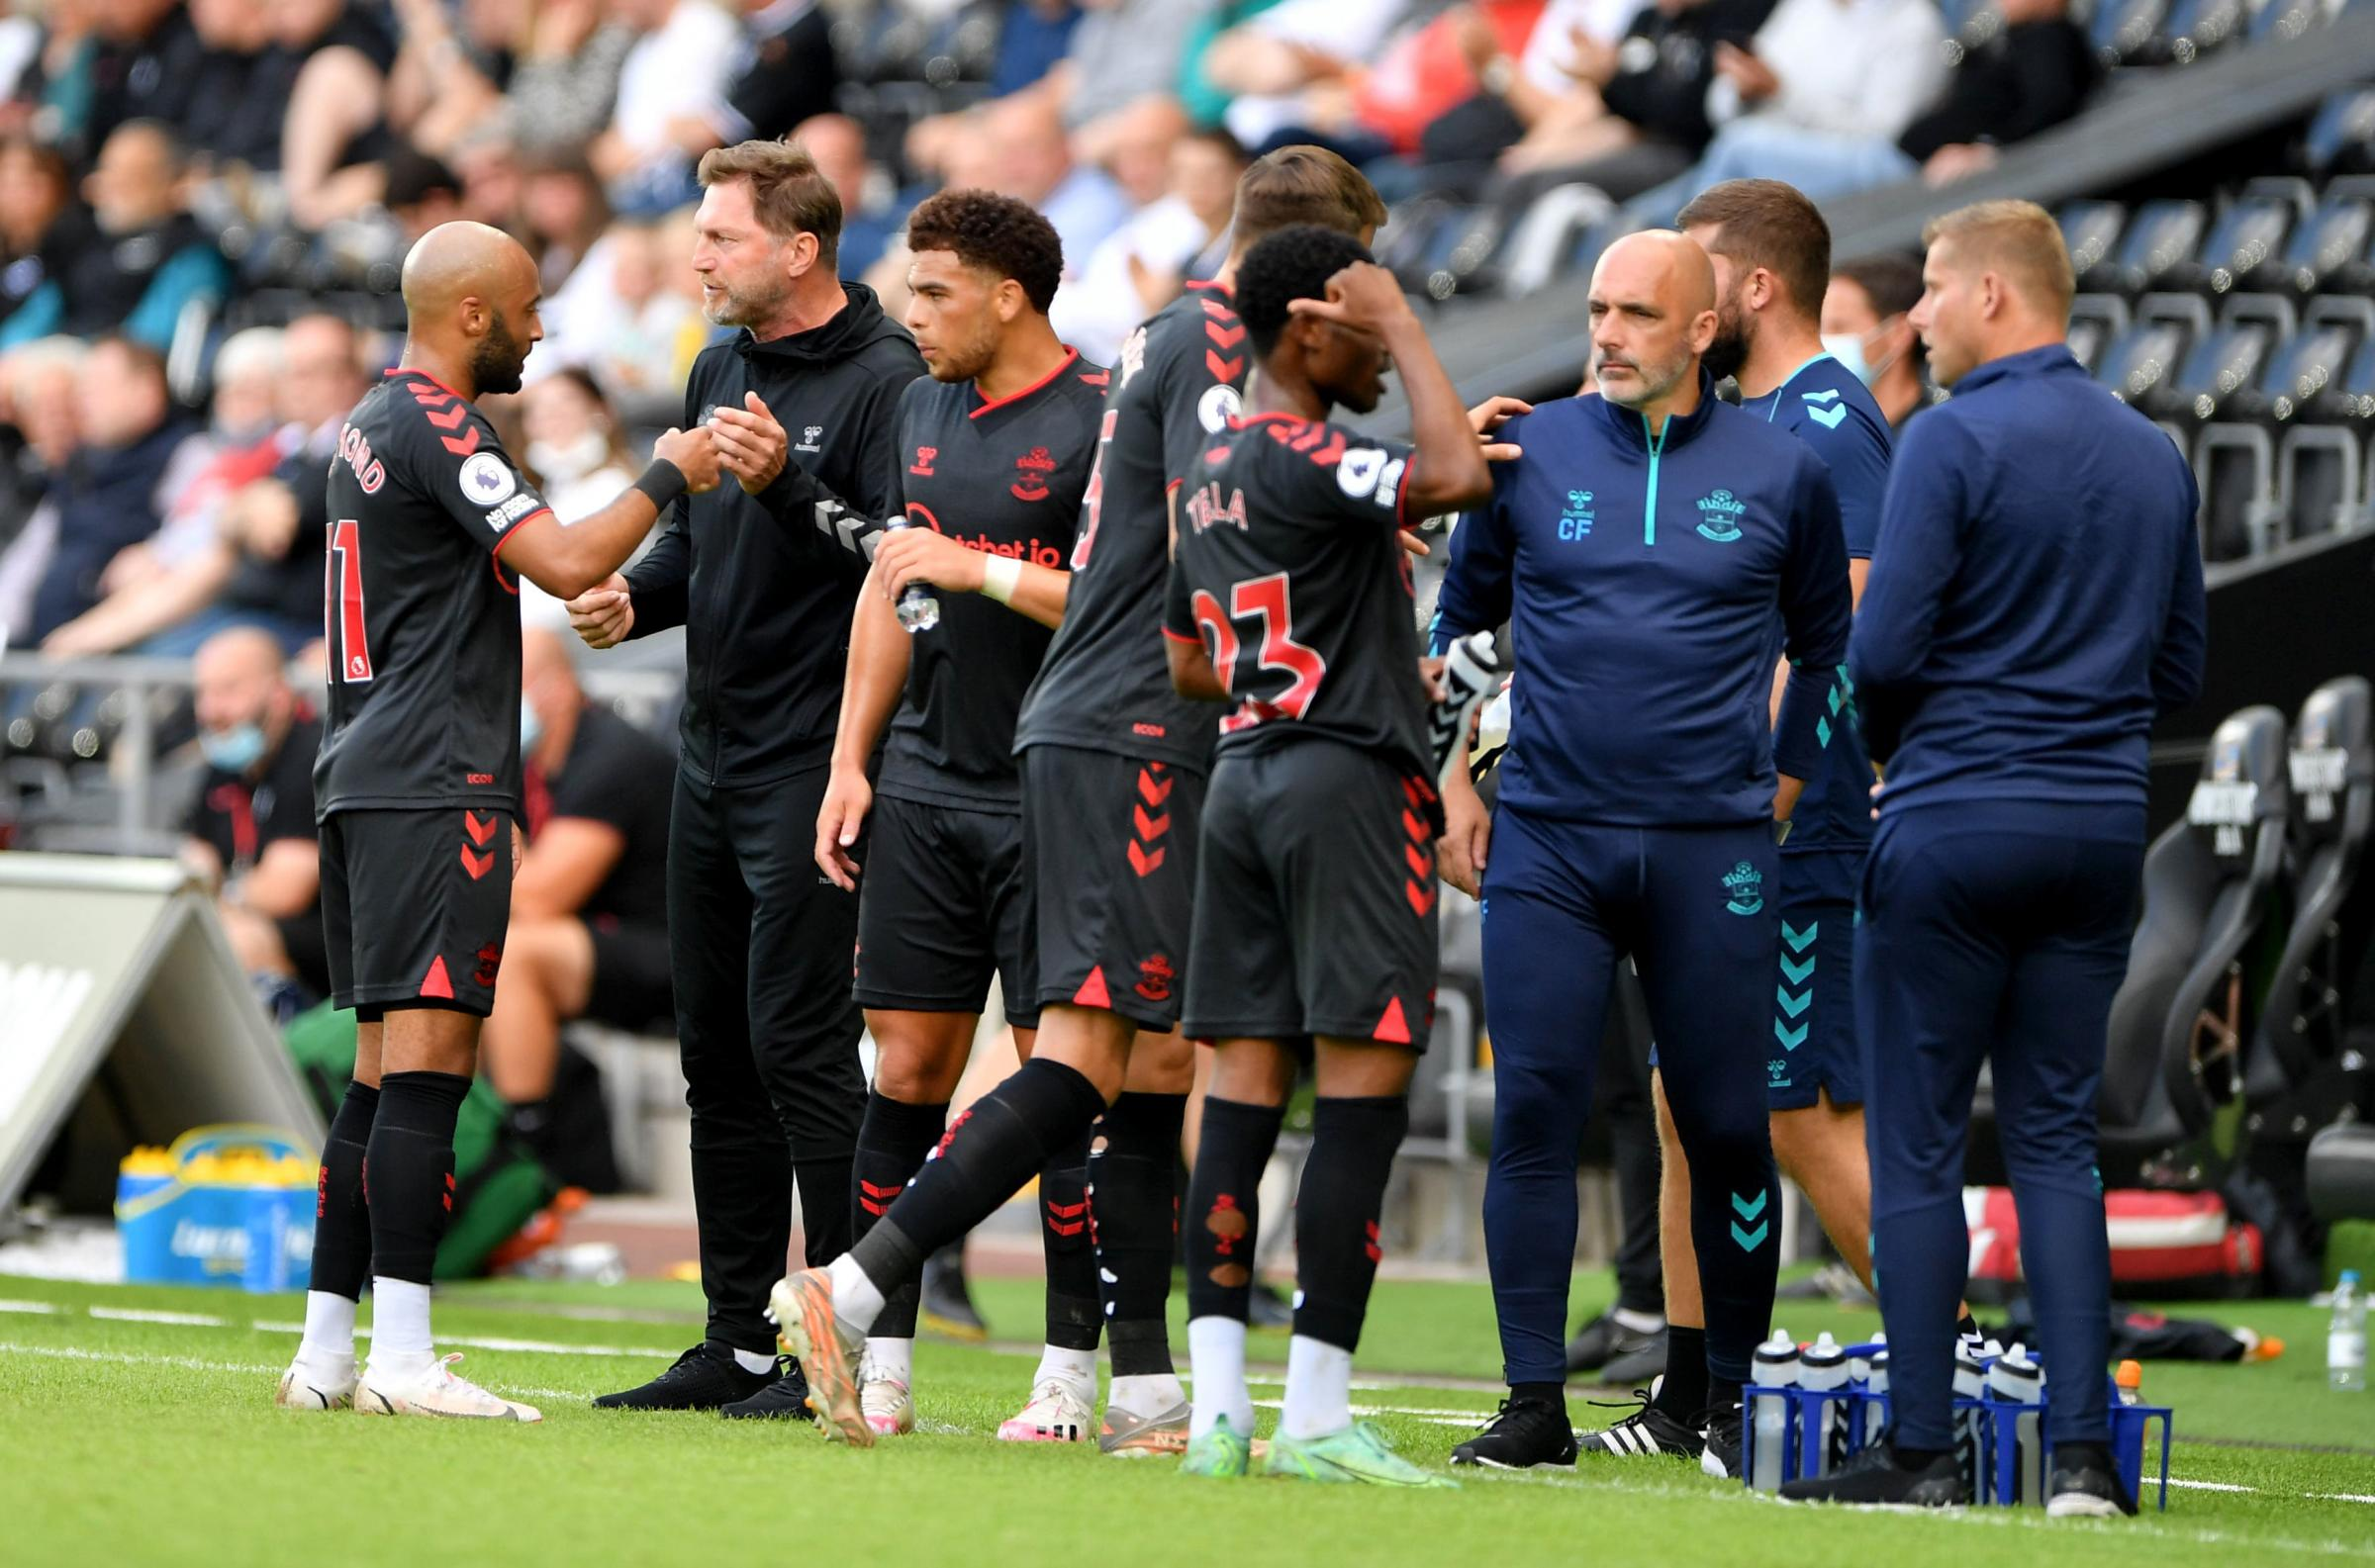 Ralph Hasenhuttl is happier with Southampton's squad size